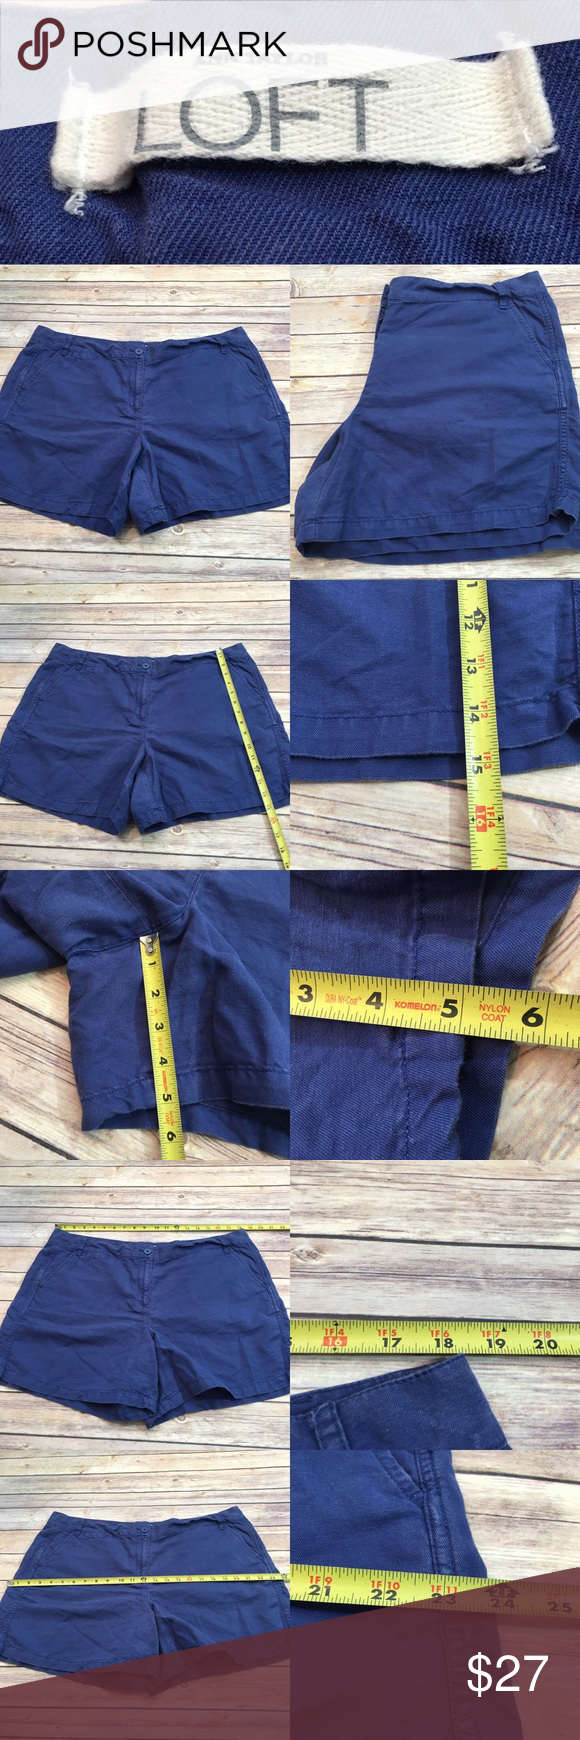 👄Sz 16 LOFT Blue Linen Blend Above Knee Shorts Measurements are in photos. Normal wash wear, no flaws. A3/23  I do not comment to my buyers after purchases, do to their privacy. If you would like any reassurance after your purchase that I did receive your order, please feel free to comment on the listing and I will promptly respond. I ship everyday and I always package safely. Thanks! LOFT Shorts